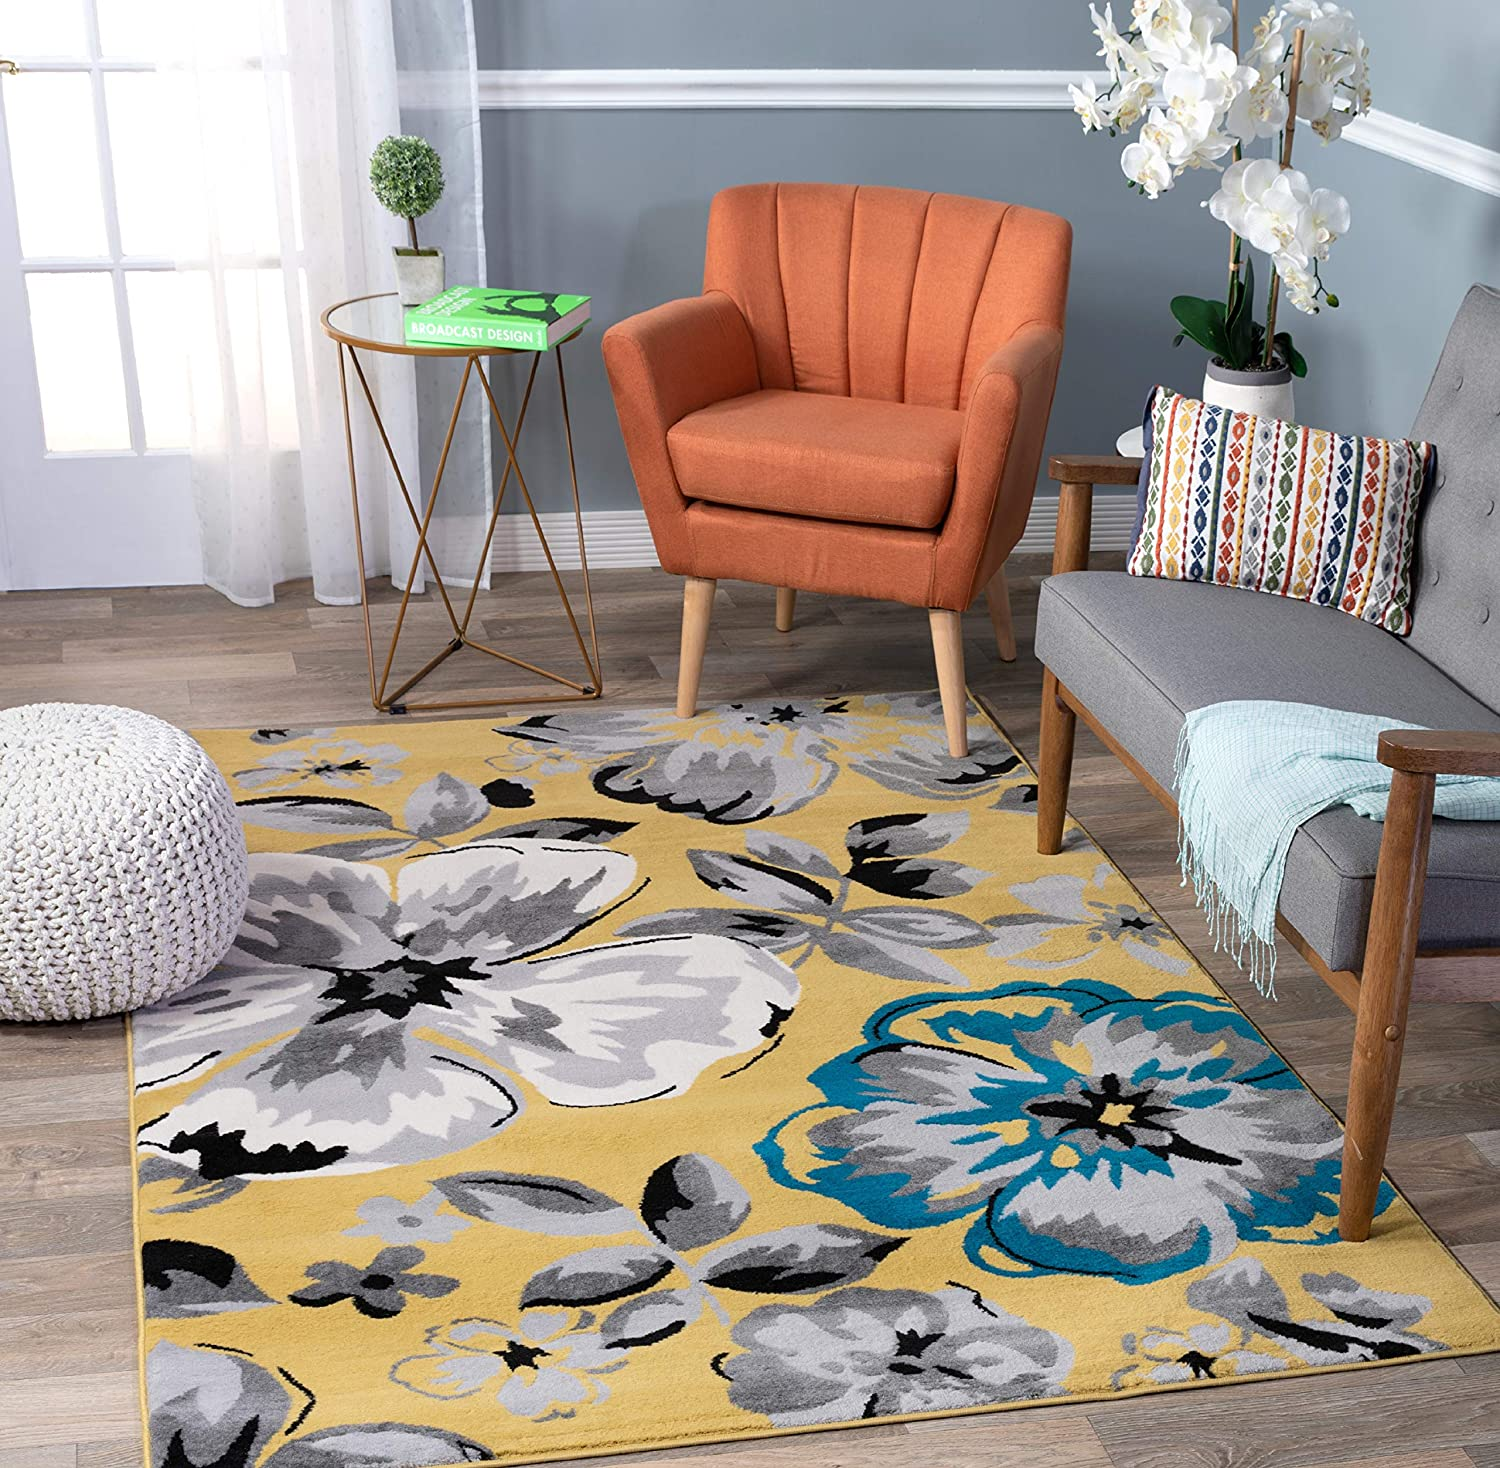 Modern Floral Area Jacksonville Mall Rugs 3'1